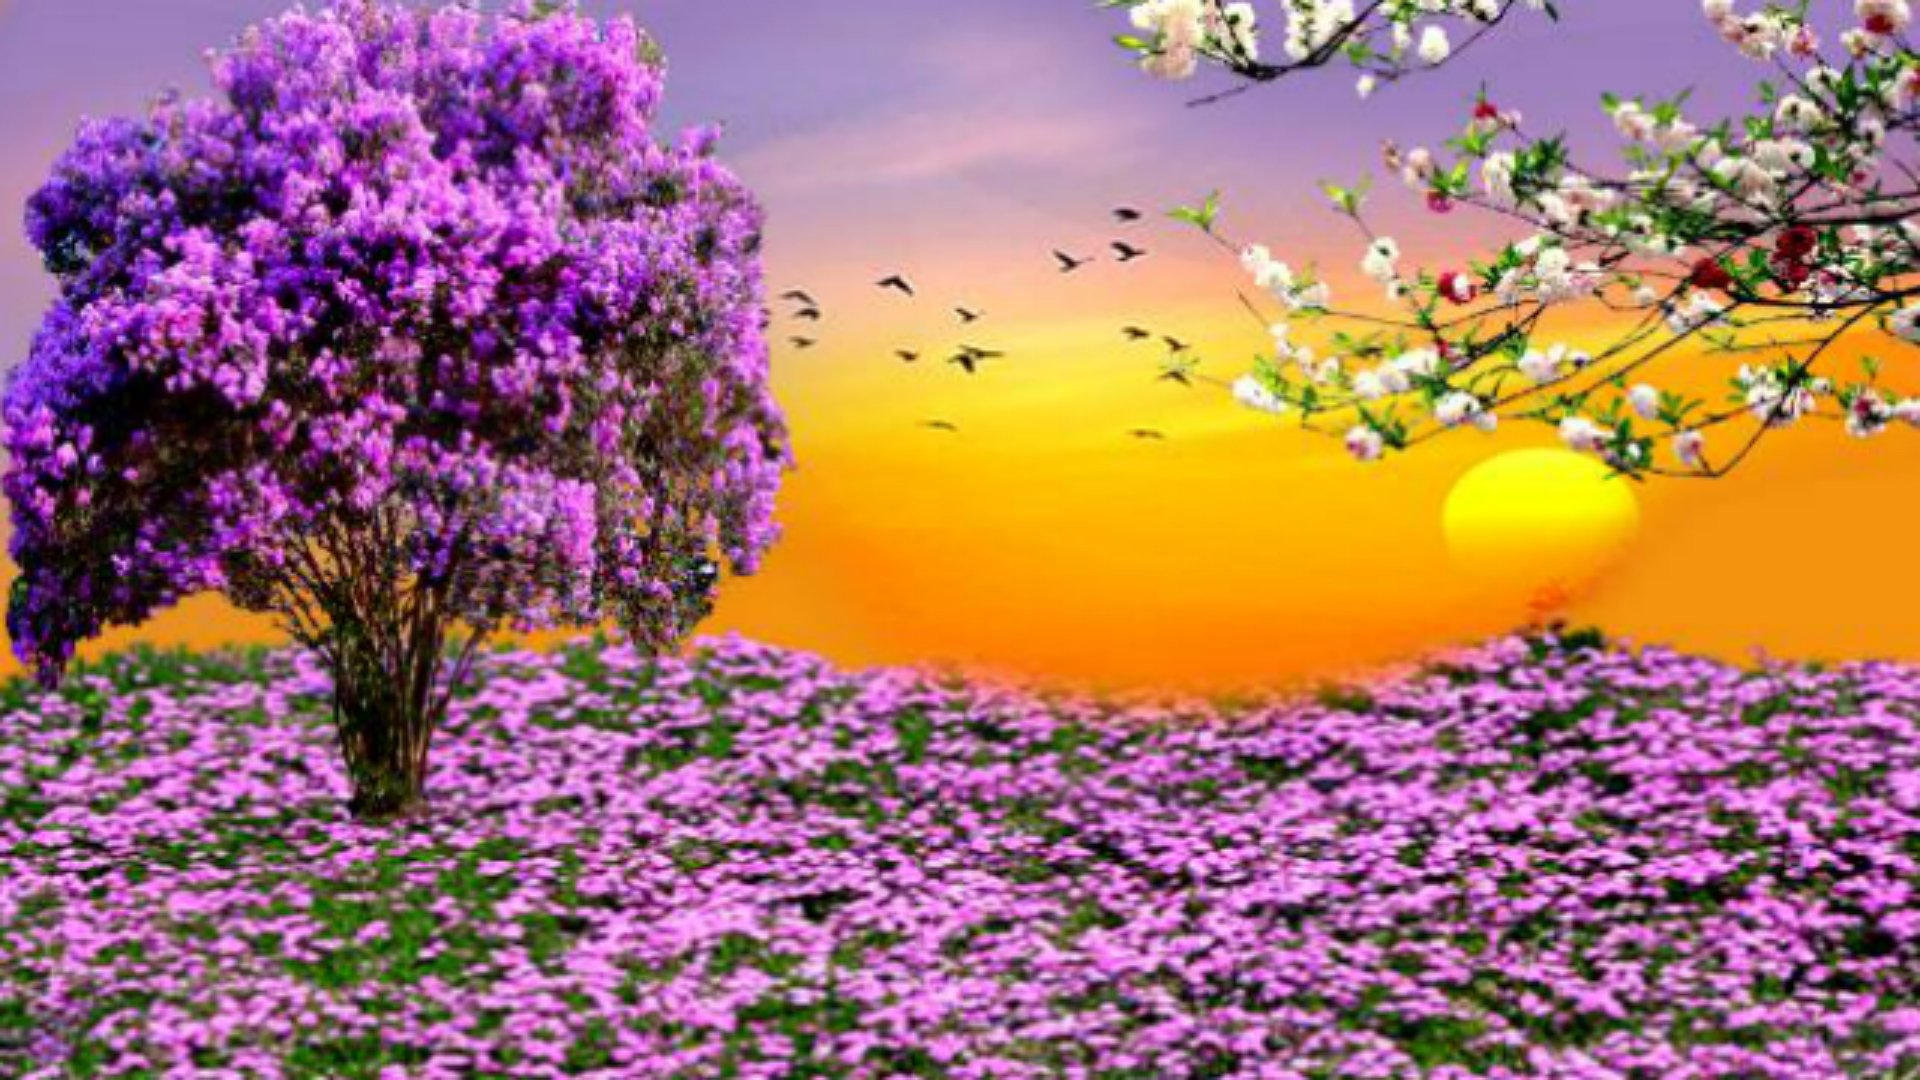 Spring HD Wallpapers - WallpaperSafari